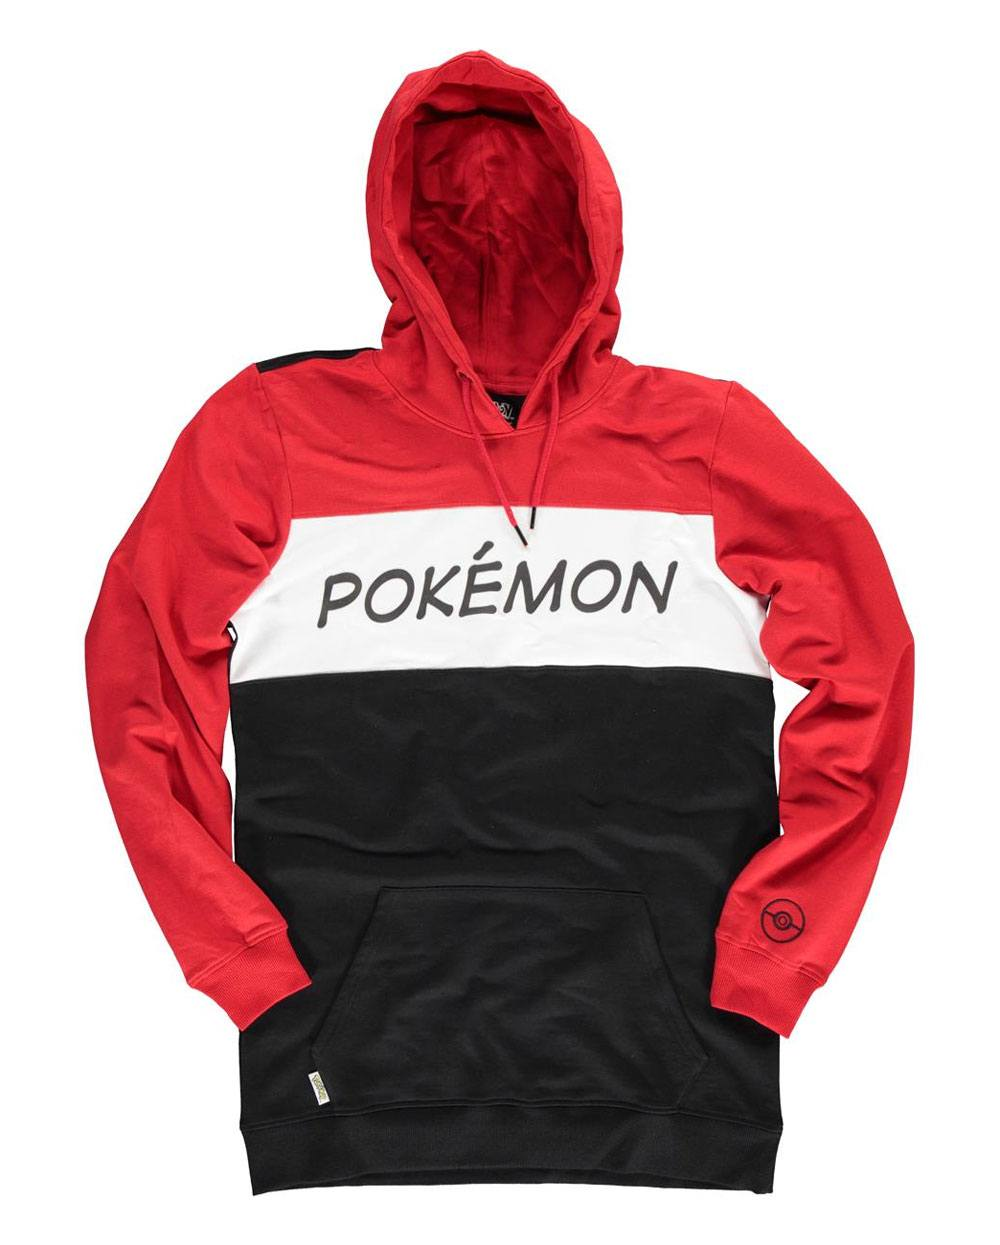 Pokémon Hooded Sweater Colour Block Size S